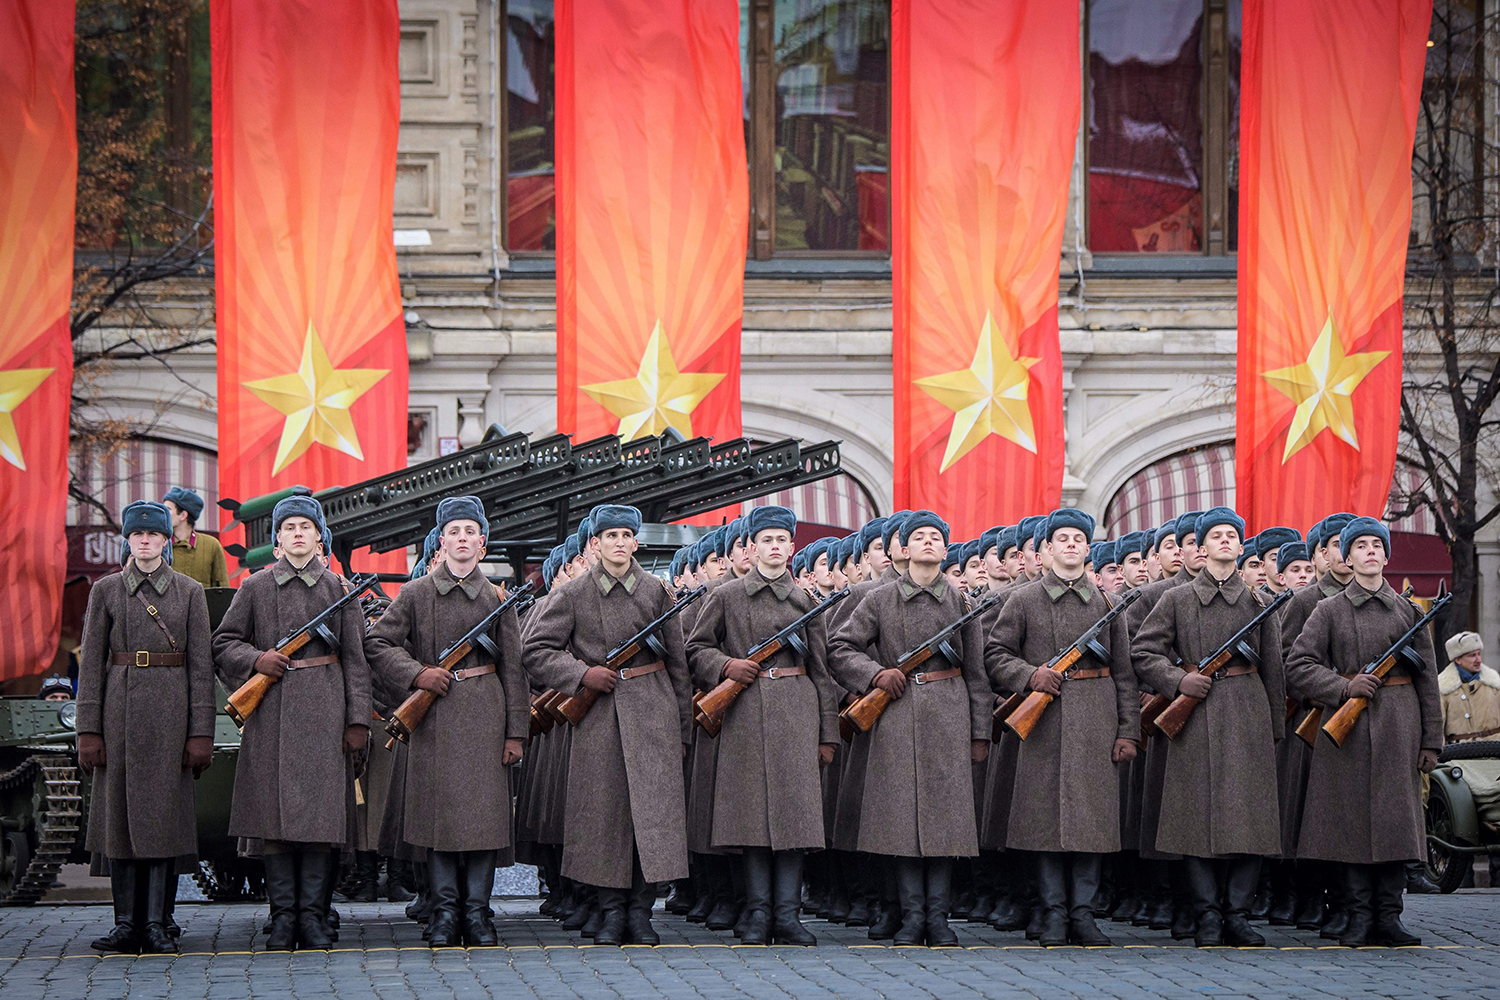 Russian servicemen dressed in historical uniforms take part in the military parade at Red Square in Moscow on Nov. 7. Mladen Antonov/AFP/Getty Images